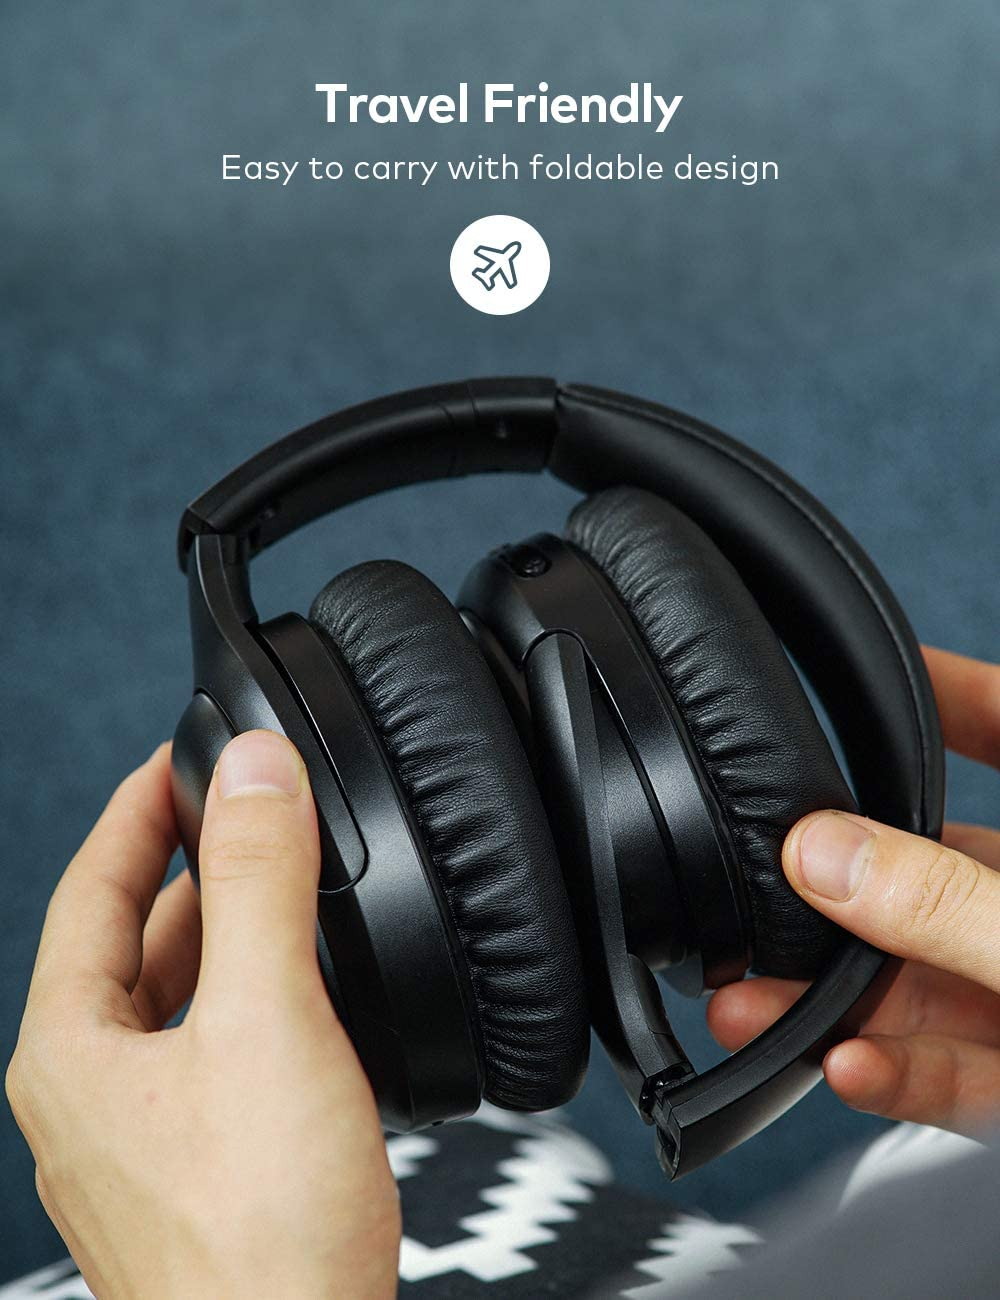 Bluetooth 5.0 Active Noise Cancelling Headphones Bluetooth Headphones Wireless Headphones BesDio Over Ear Headphones with Quick Charge Deep Bass Mic 30H Playtime for Travel Work Cellphone